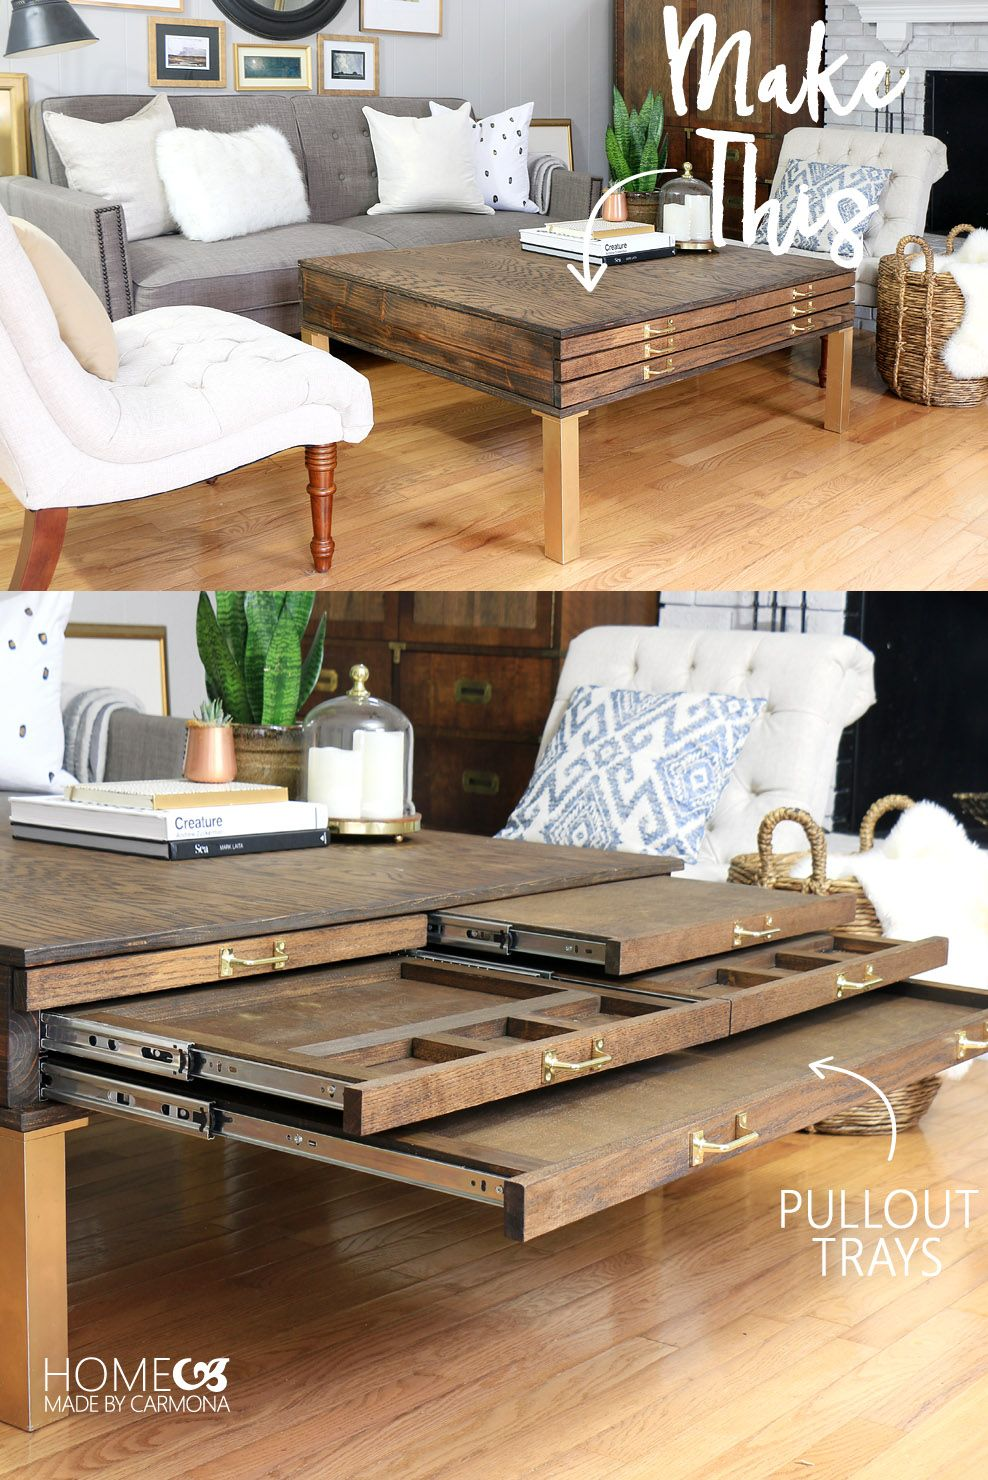 Diy Coffee Table With Pullouts Home Made By Carmona Blog